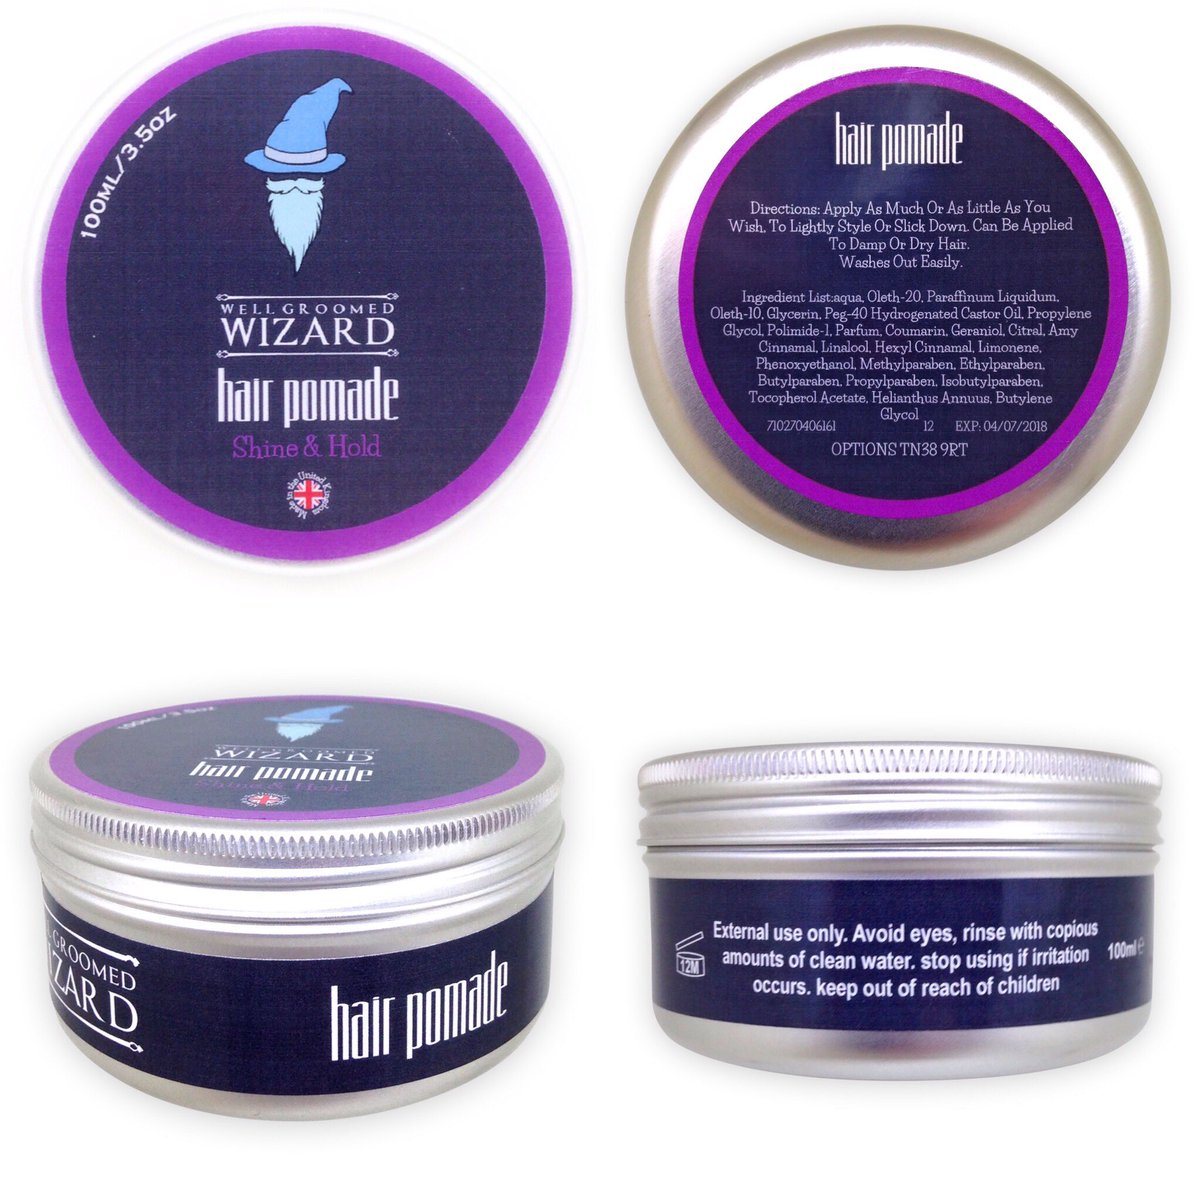 Our strong hold, easy wash out hair pomade RT if you want it #pomade #hairstyle #barber #haircare #hairdresser #barberlife #haircut #hair<br>http://pic.twitter.com/lhvZXixOAQ